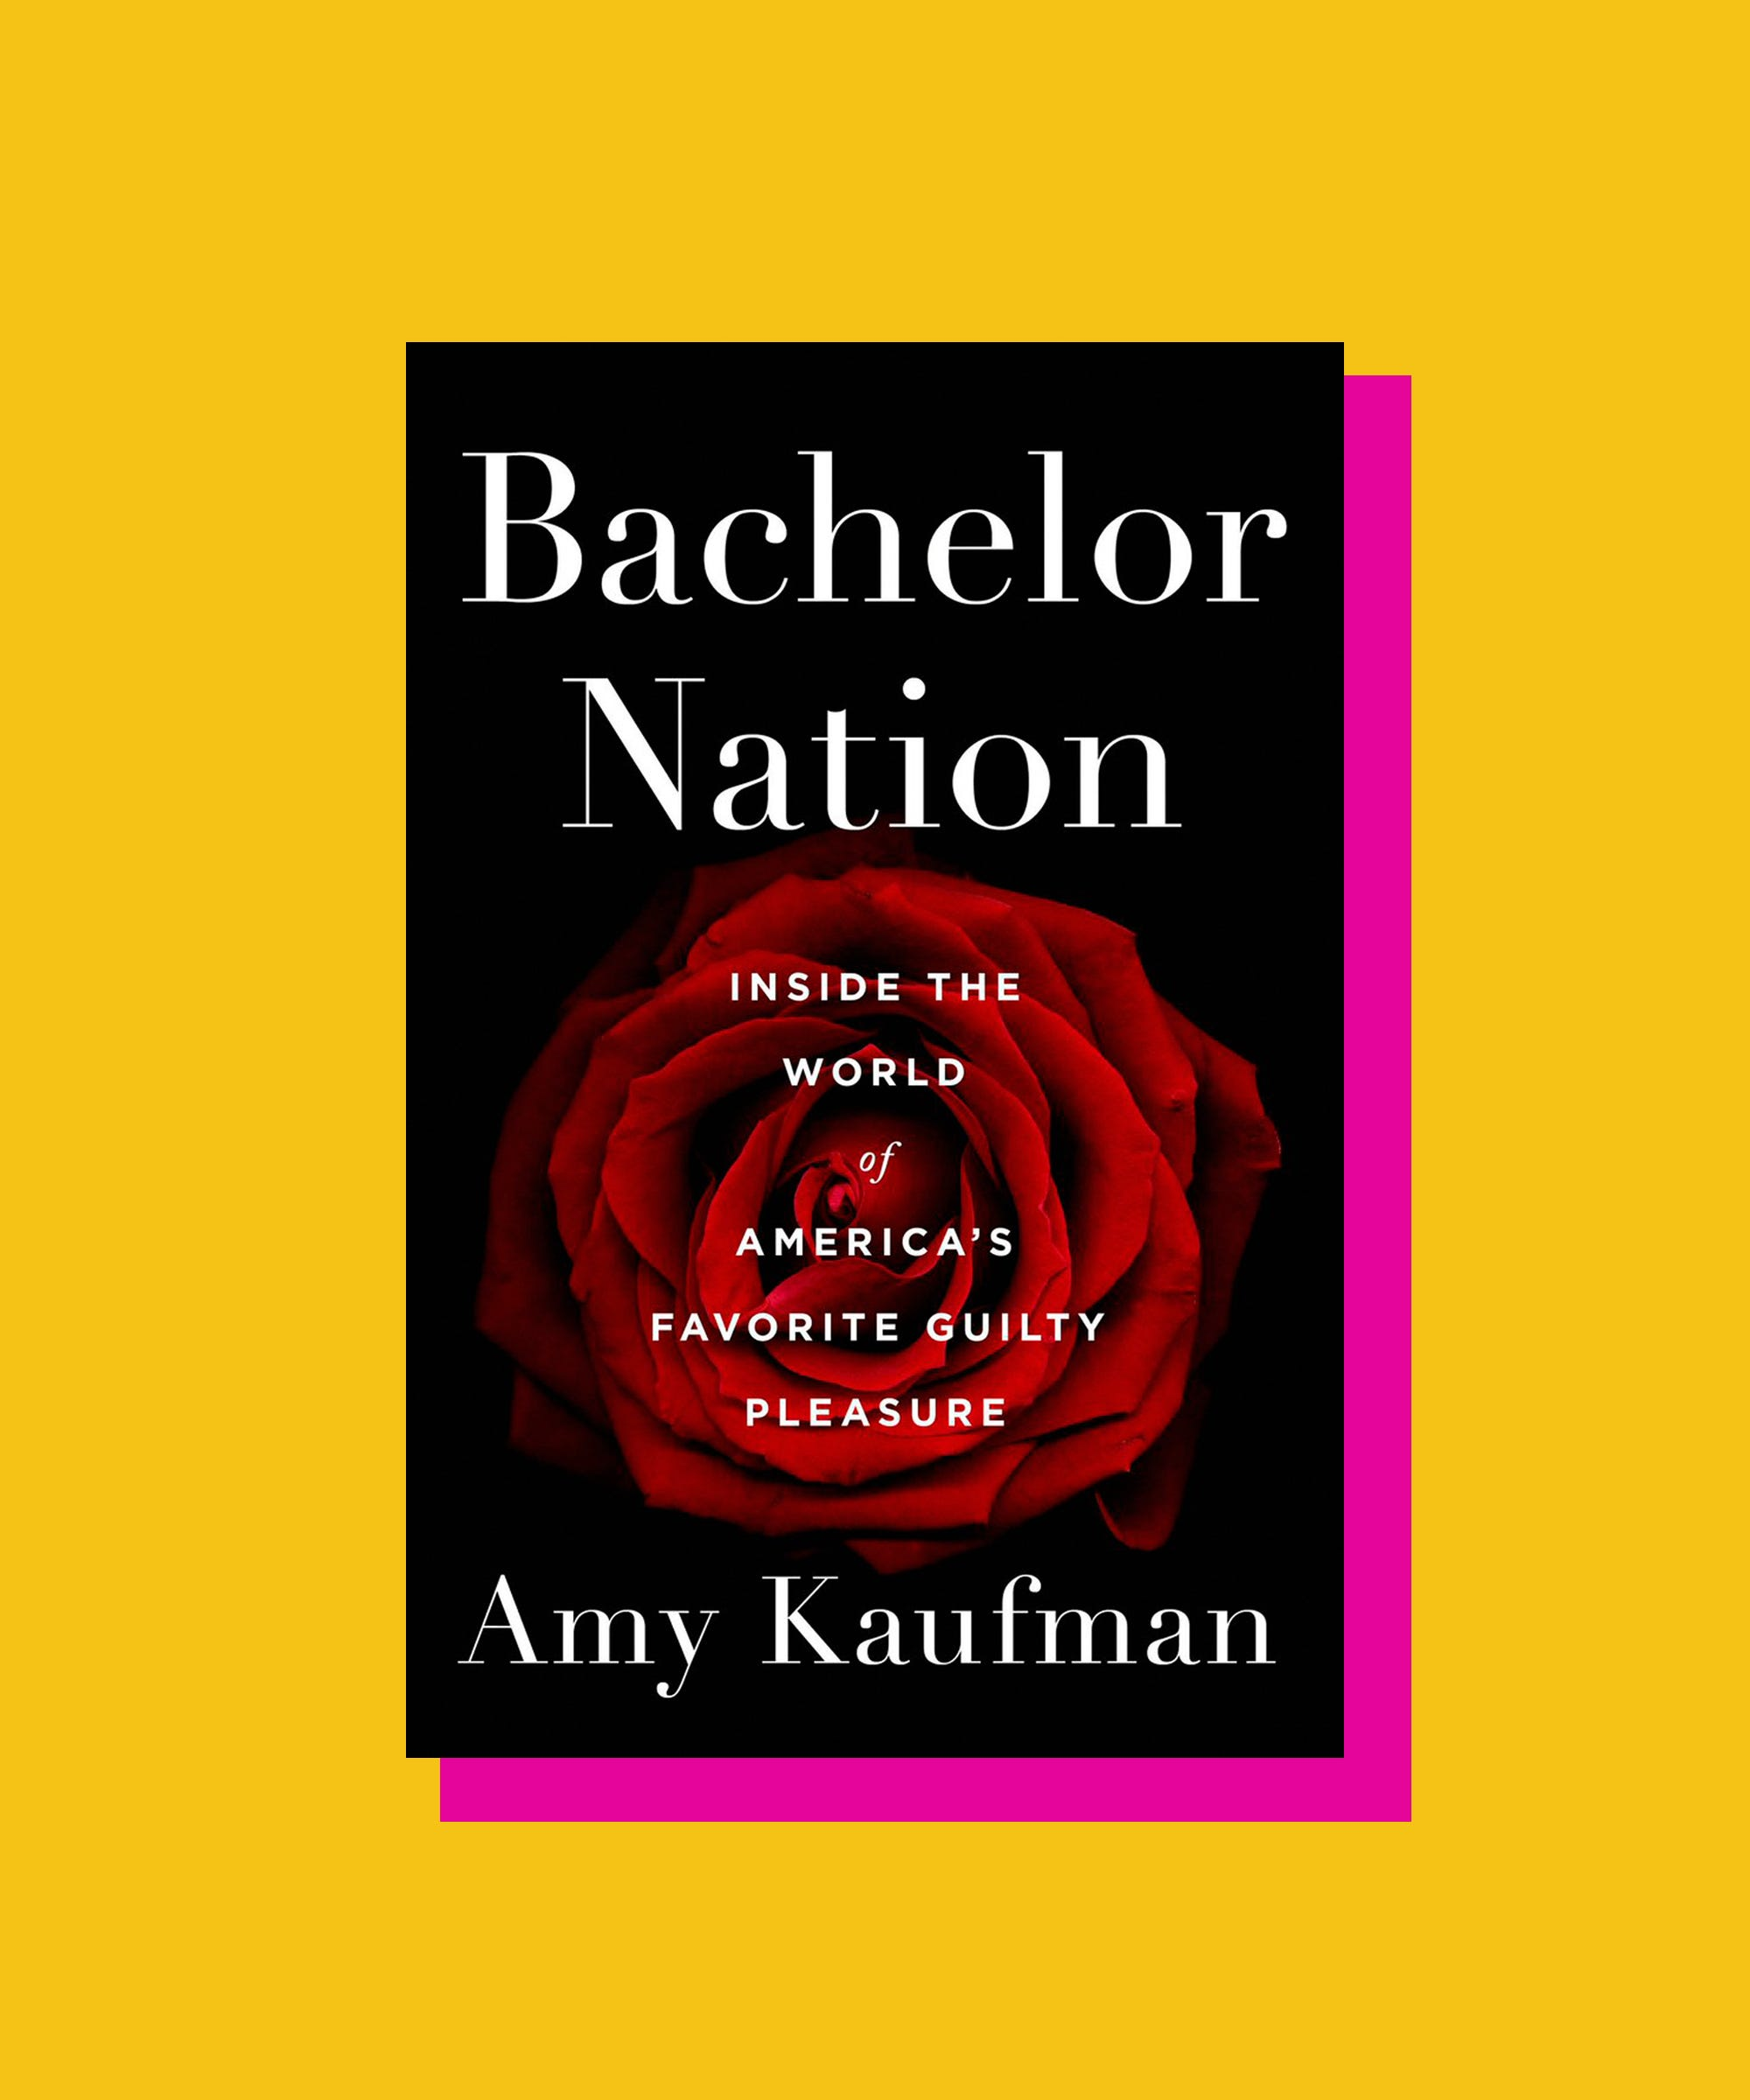 Amy Kaufman Talks The Bachelor And Her Book